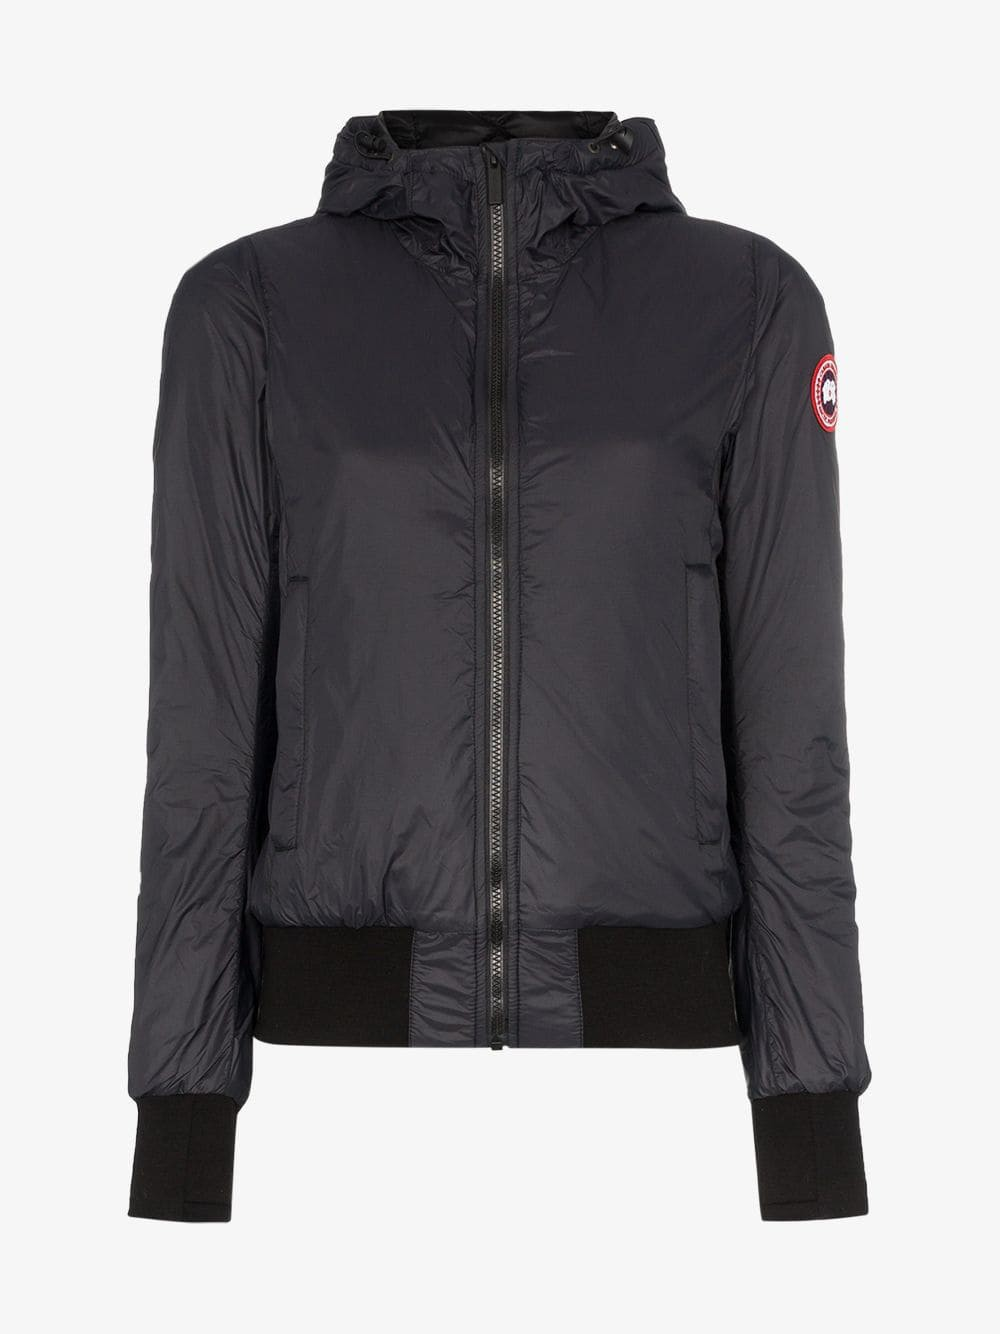 Canada Goose Dore hooded bomber jacket in black